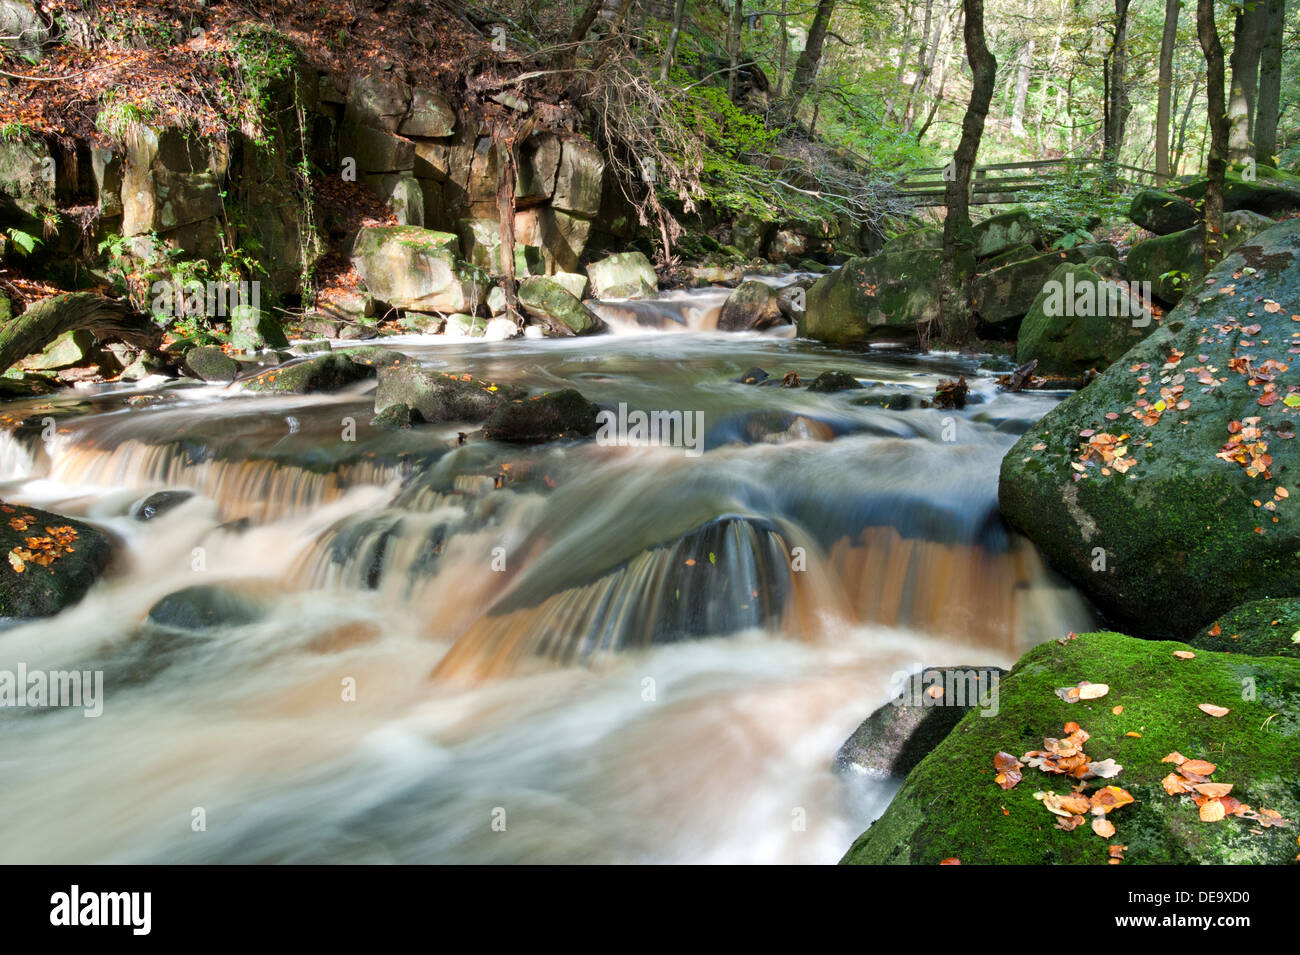 Burbage Brook Flowing Through Padley Gorge, Longshaw Estate, Peak District National Park, Derbyshire, England, UK - Stock Image